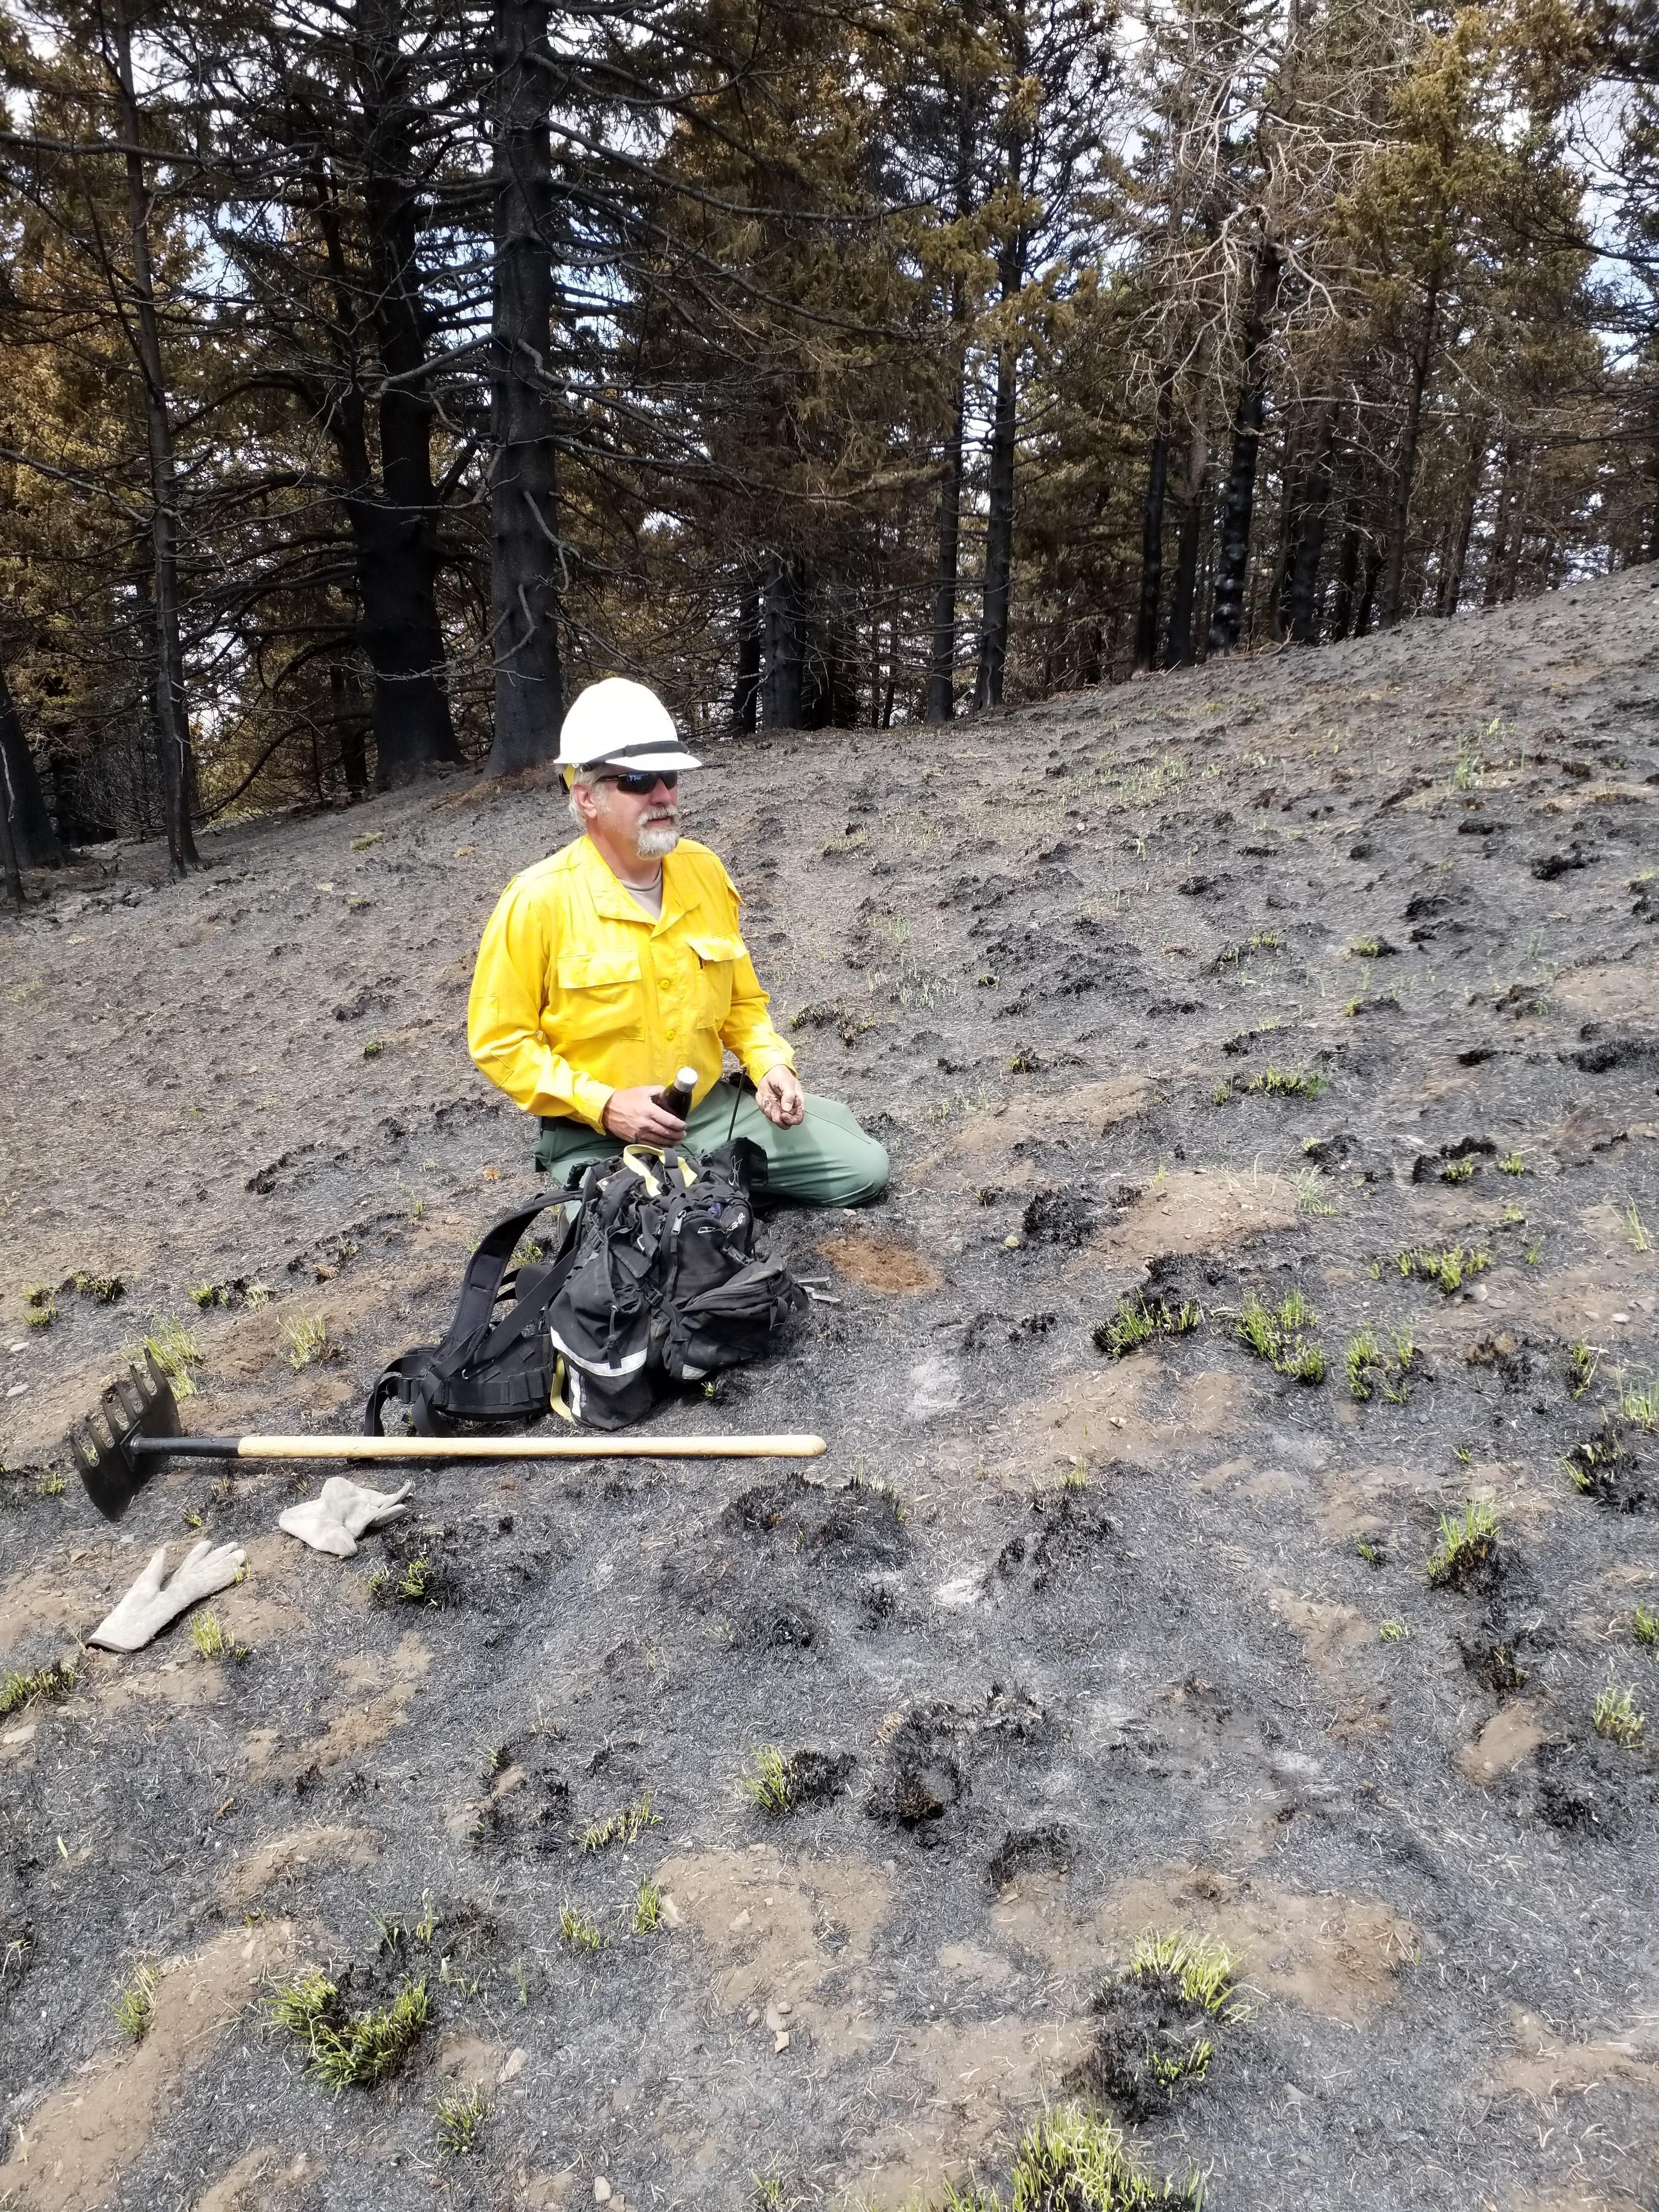 Soil Scientist examines soils within the burned area of the Three Rivers Fire